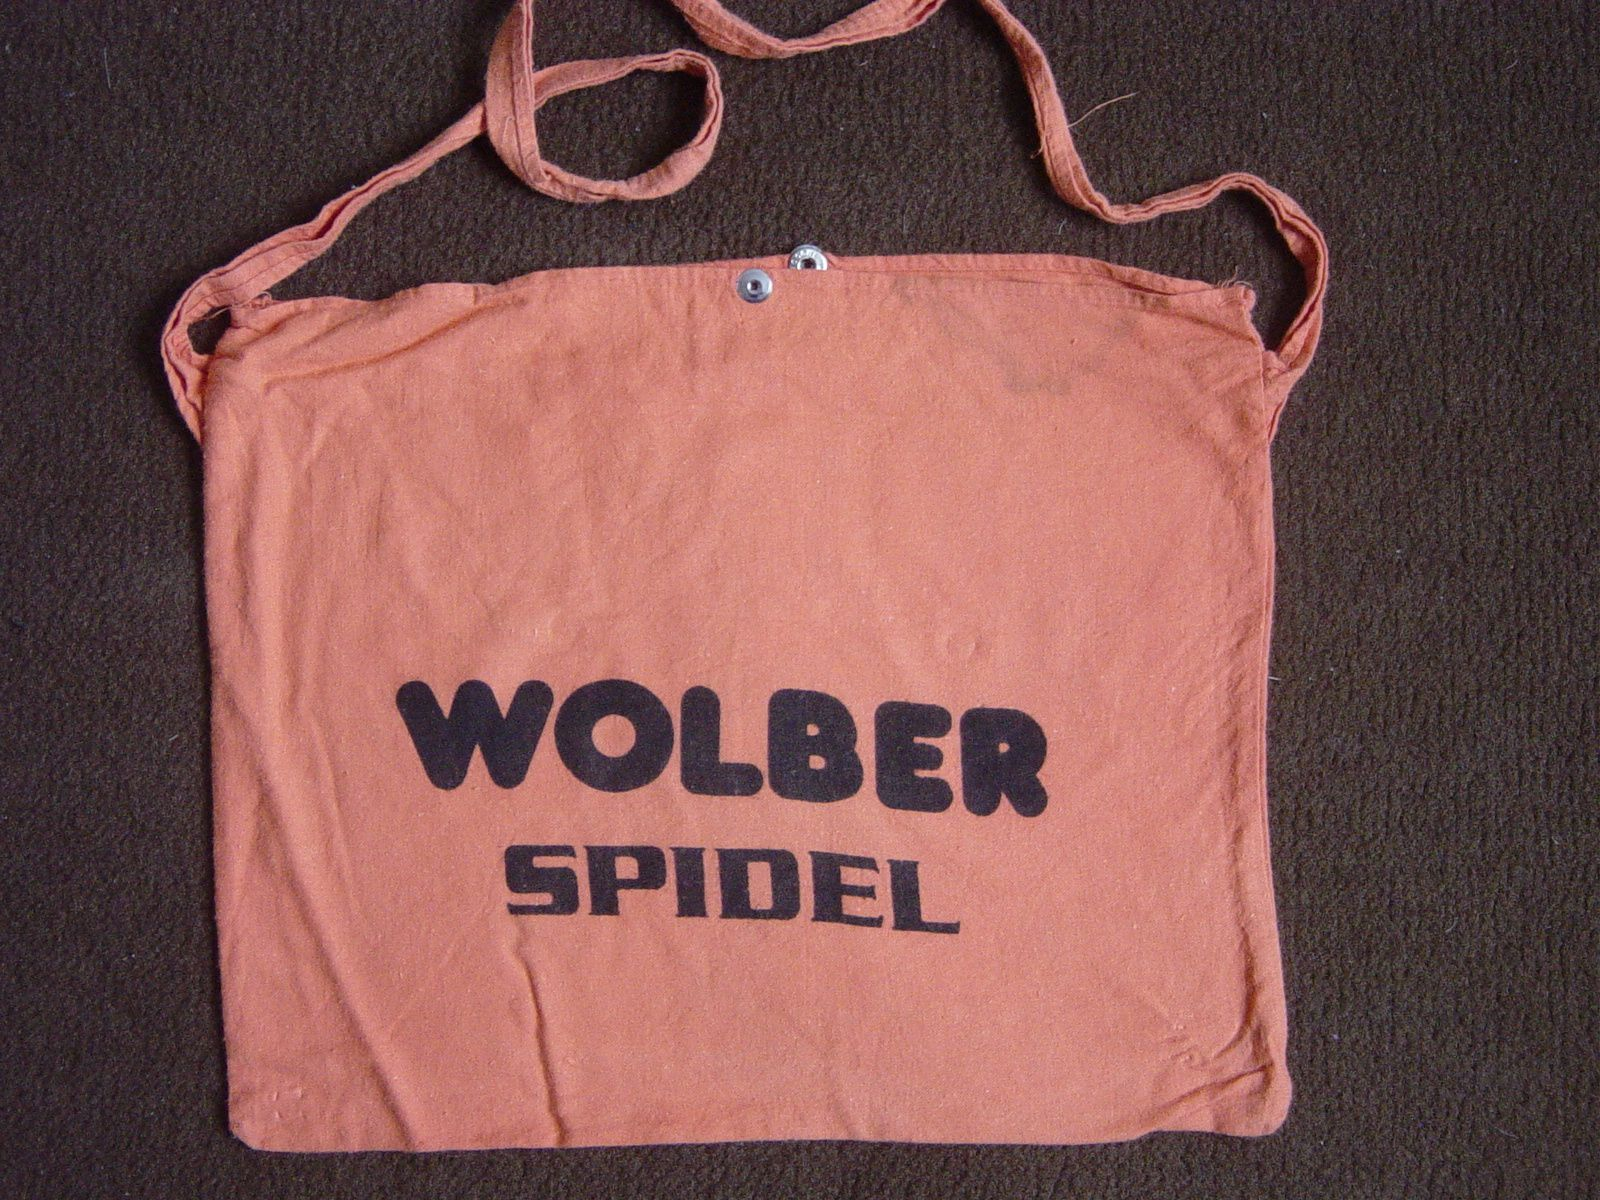 Equipe Wolber Spidel 1982